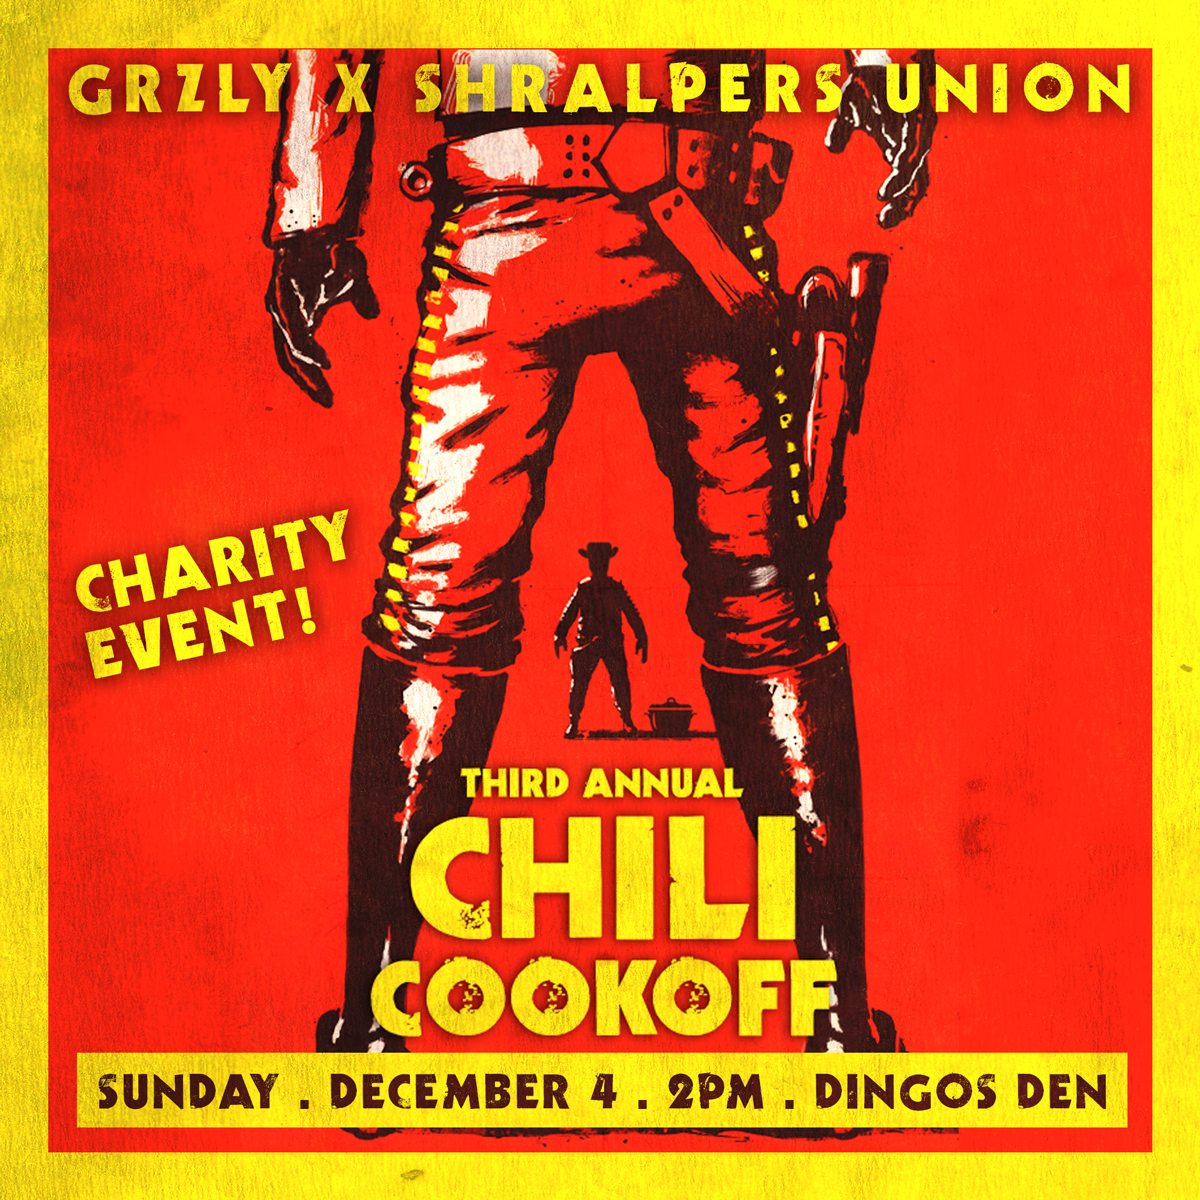 CHILI_COOKOFF_3.png